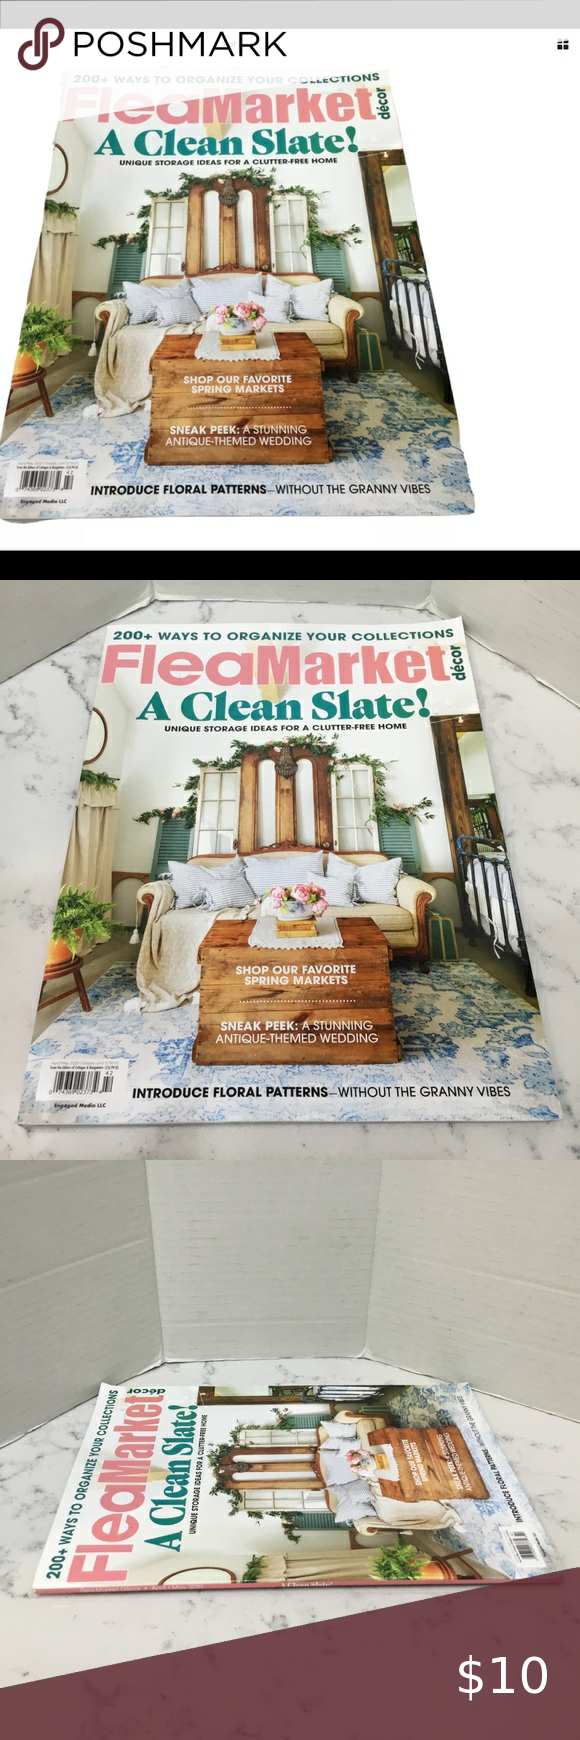 Flea Market A Clean Slate! April/May 2020 Issue Flea Market A Clean Slate! April/May 2020 Issue FREE SHIPPING Brand New never opened news stand quality Ours is a smoke free home � Accents Coffee Table Books